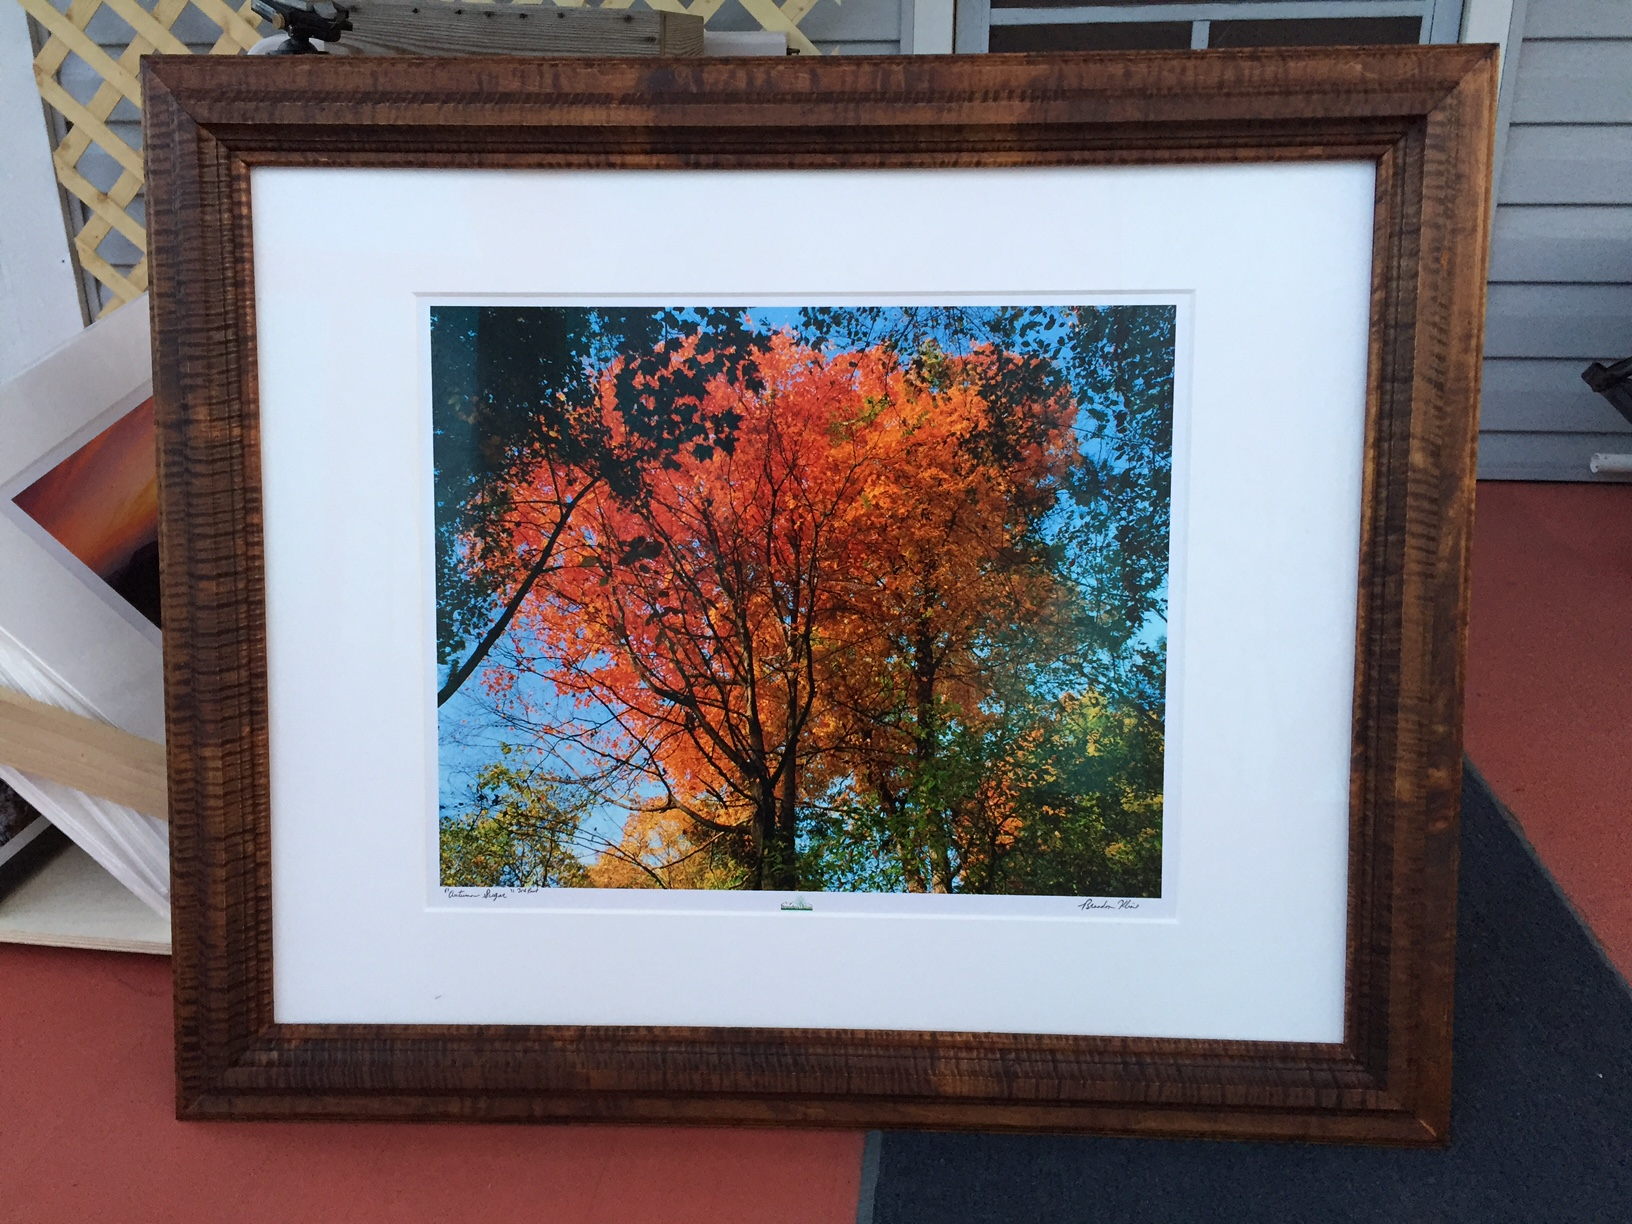 Curly Maple Frame w/ color burned in using Aquafortis, Museum Glass, 6-ply Crescent Select White Matboard